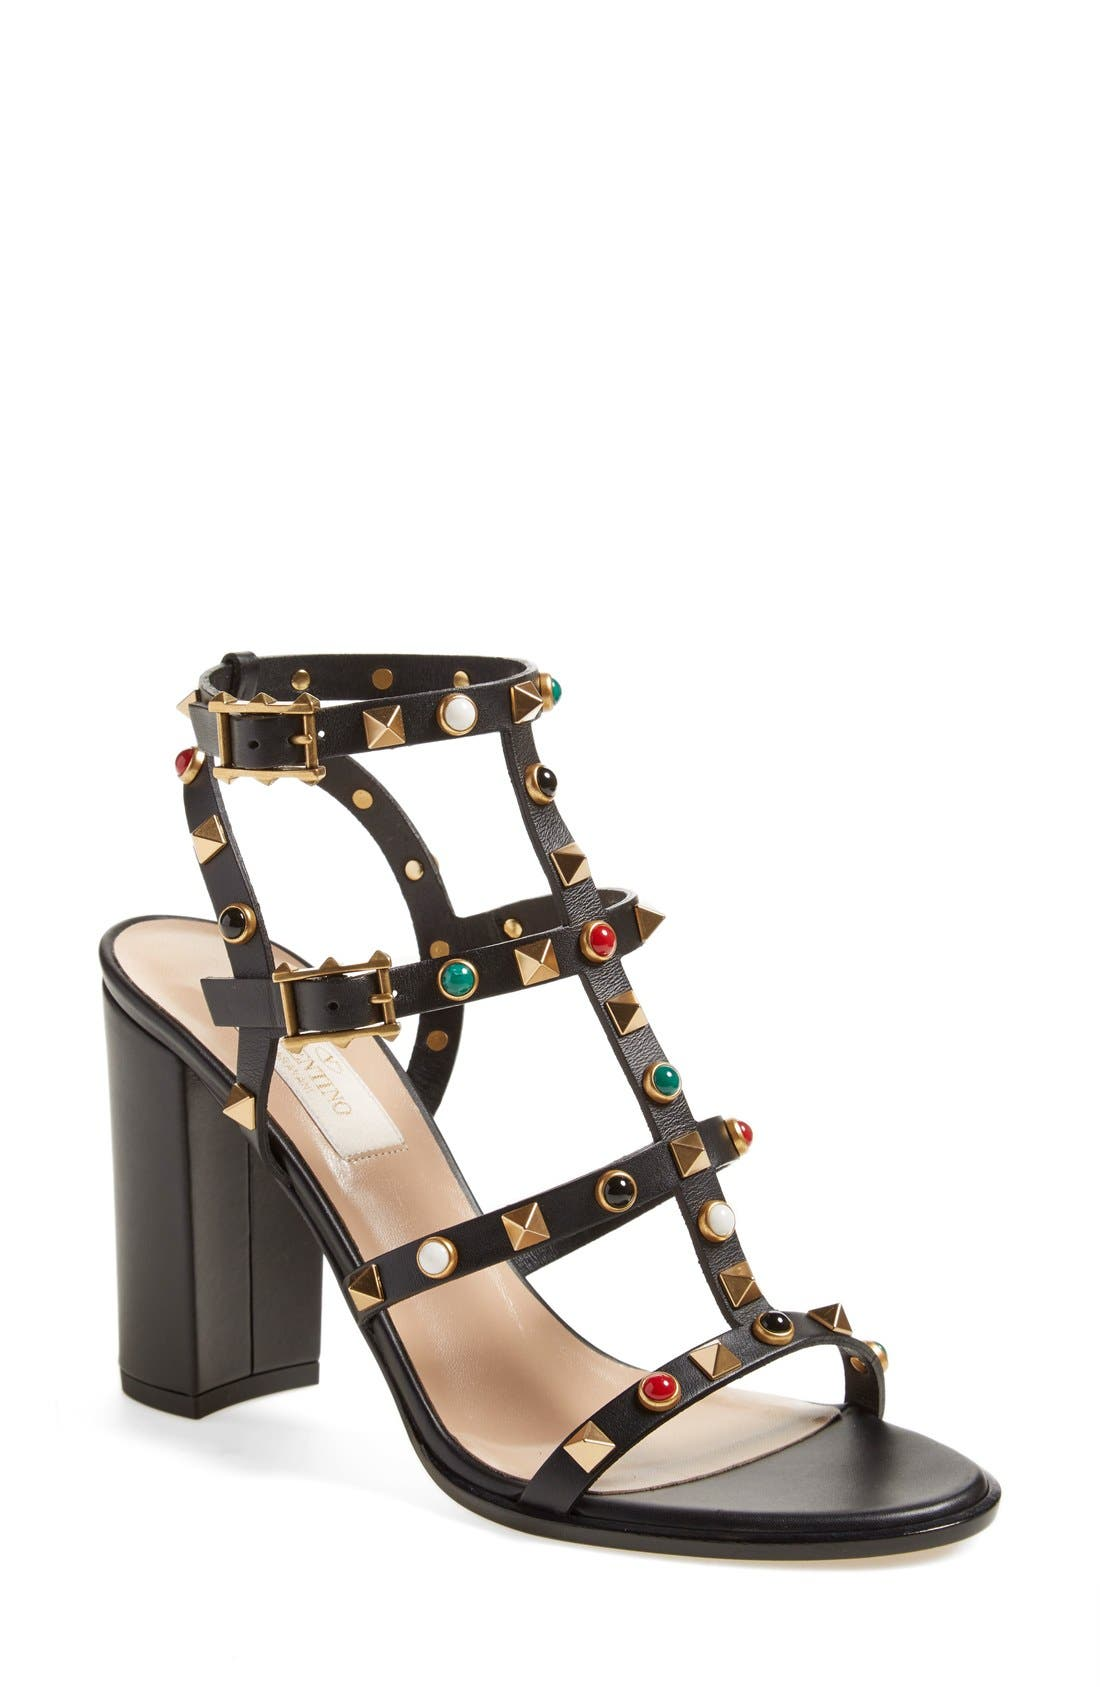 Alternate Image 1 Selected - Valentino 'Vitello' Studded Sandal (Women)